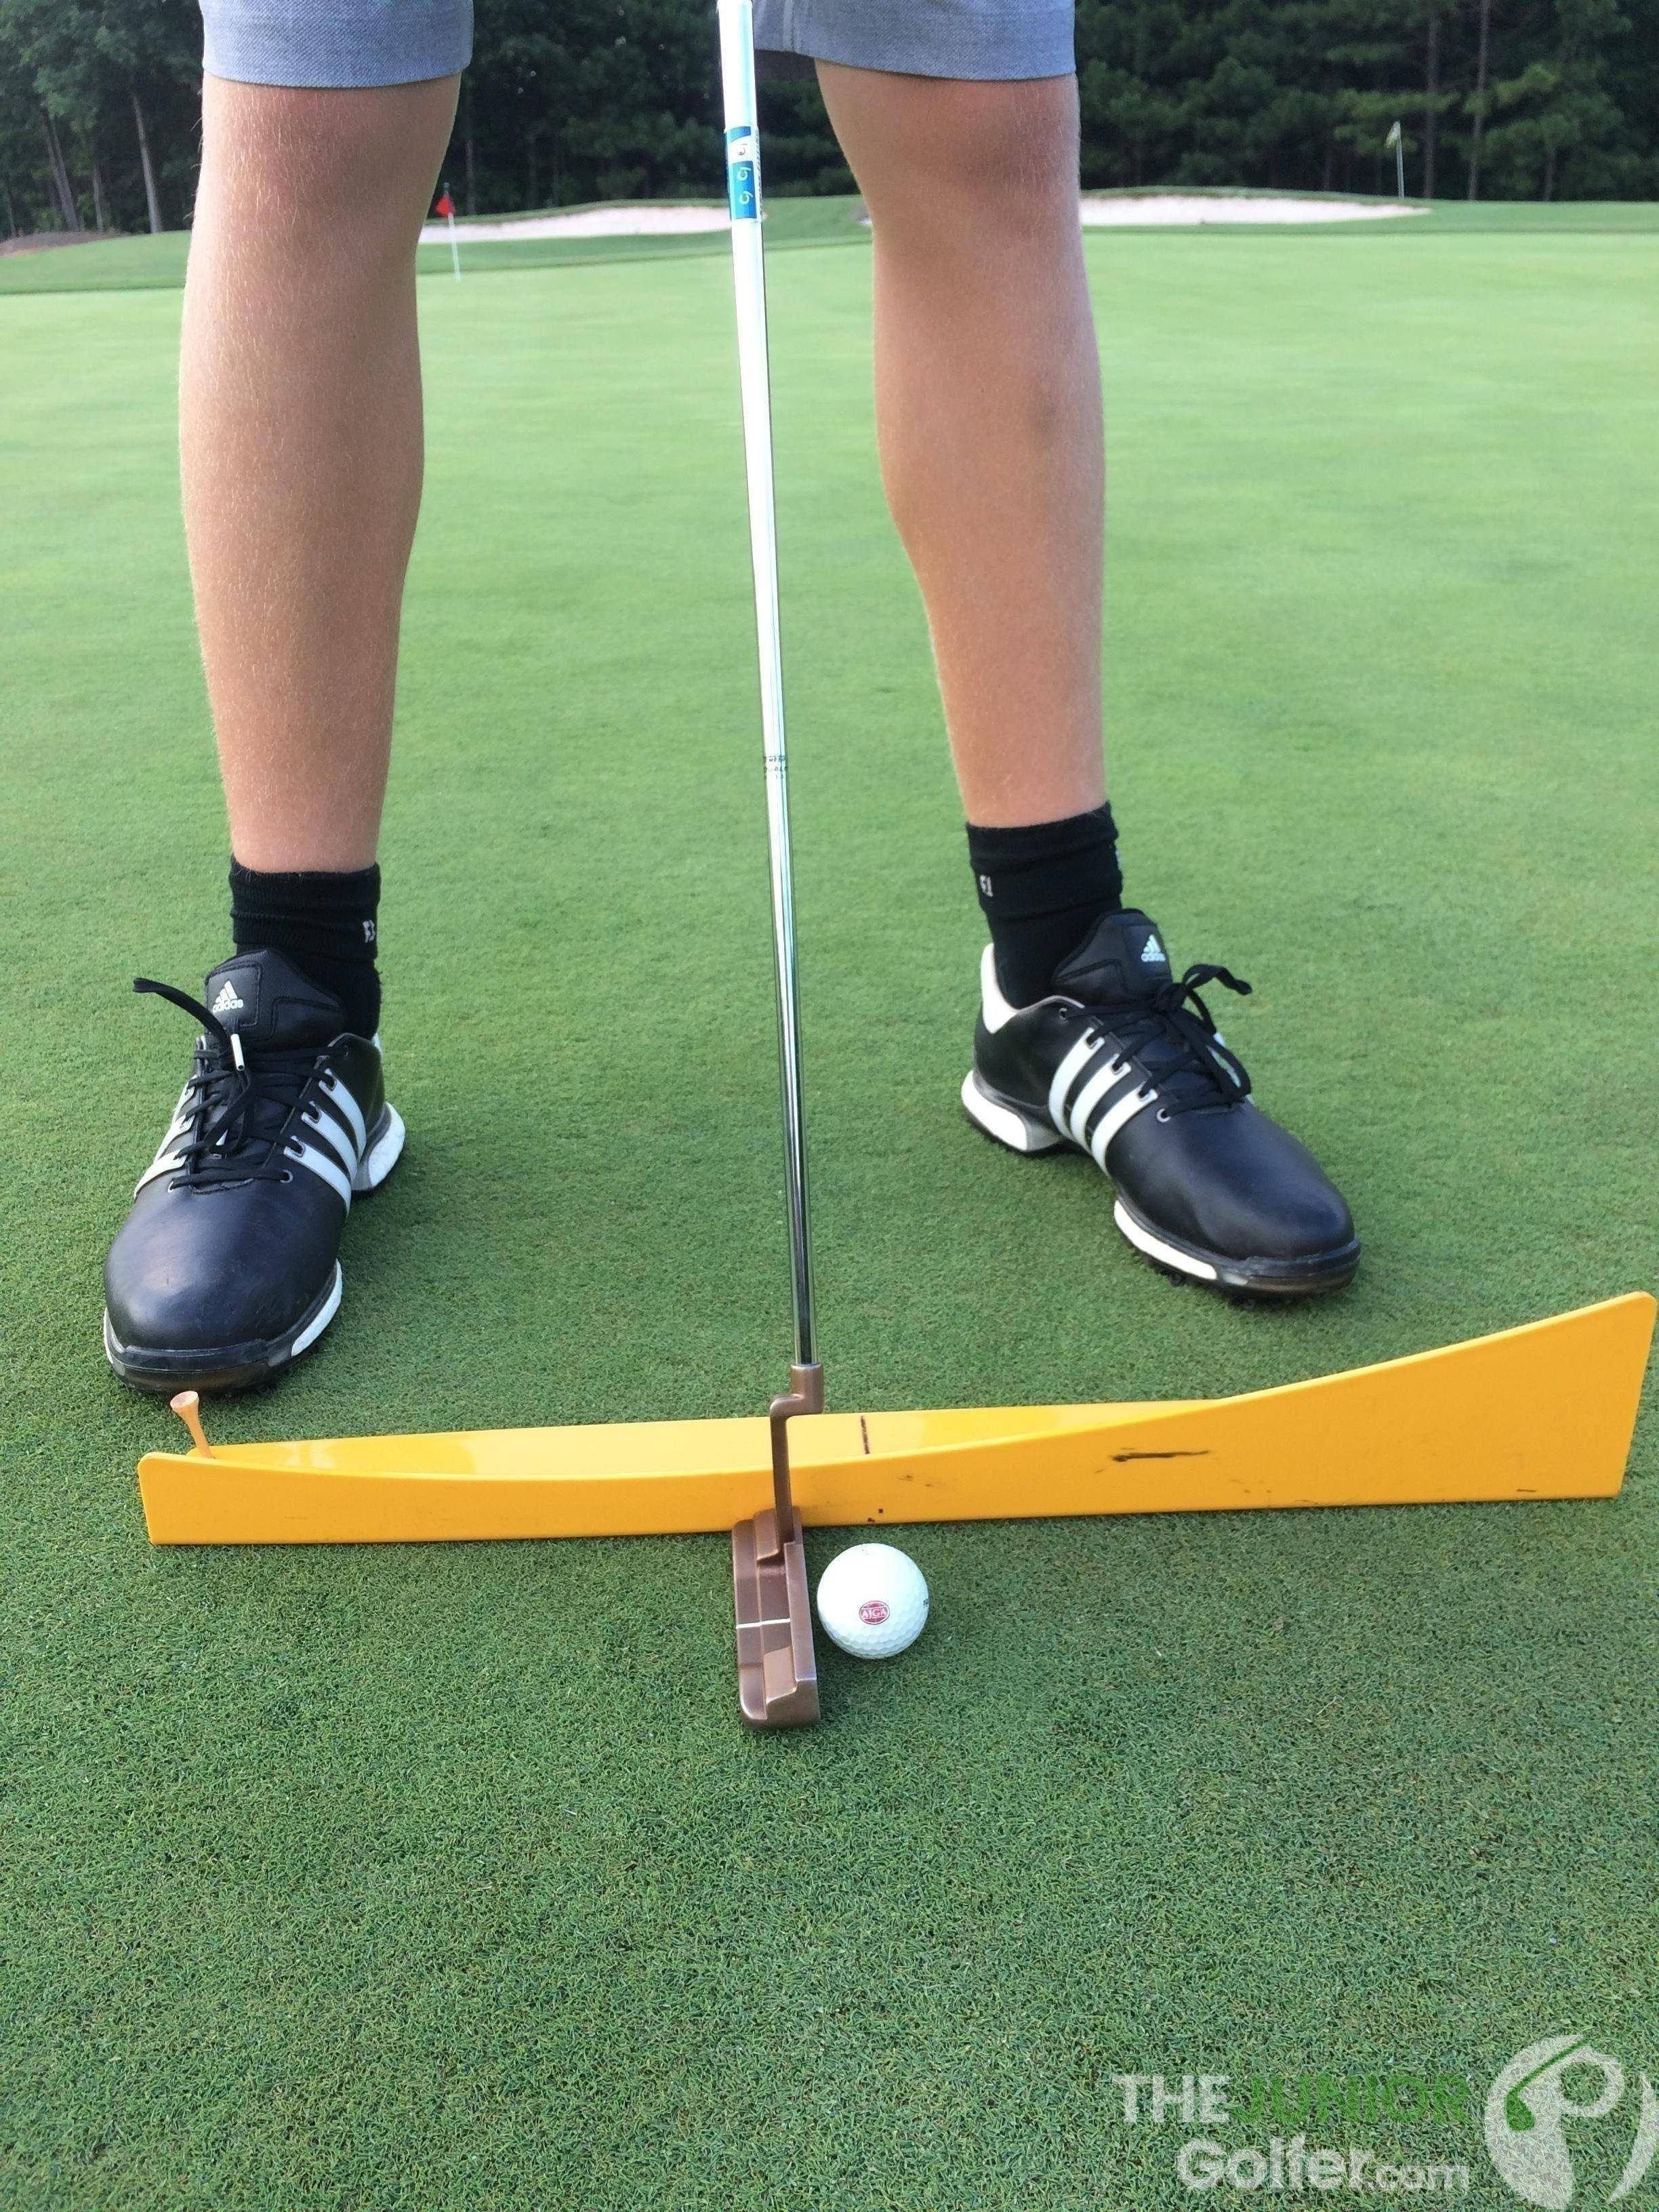 junior golf putting aid momentus putting track